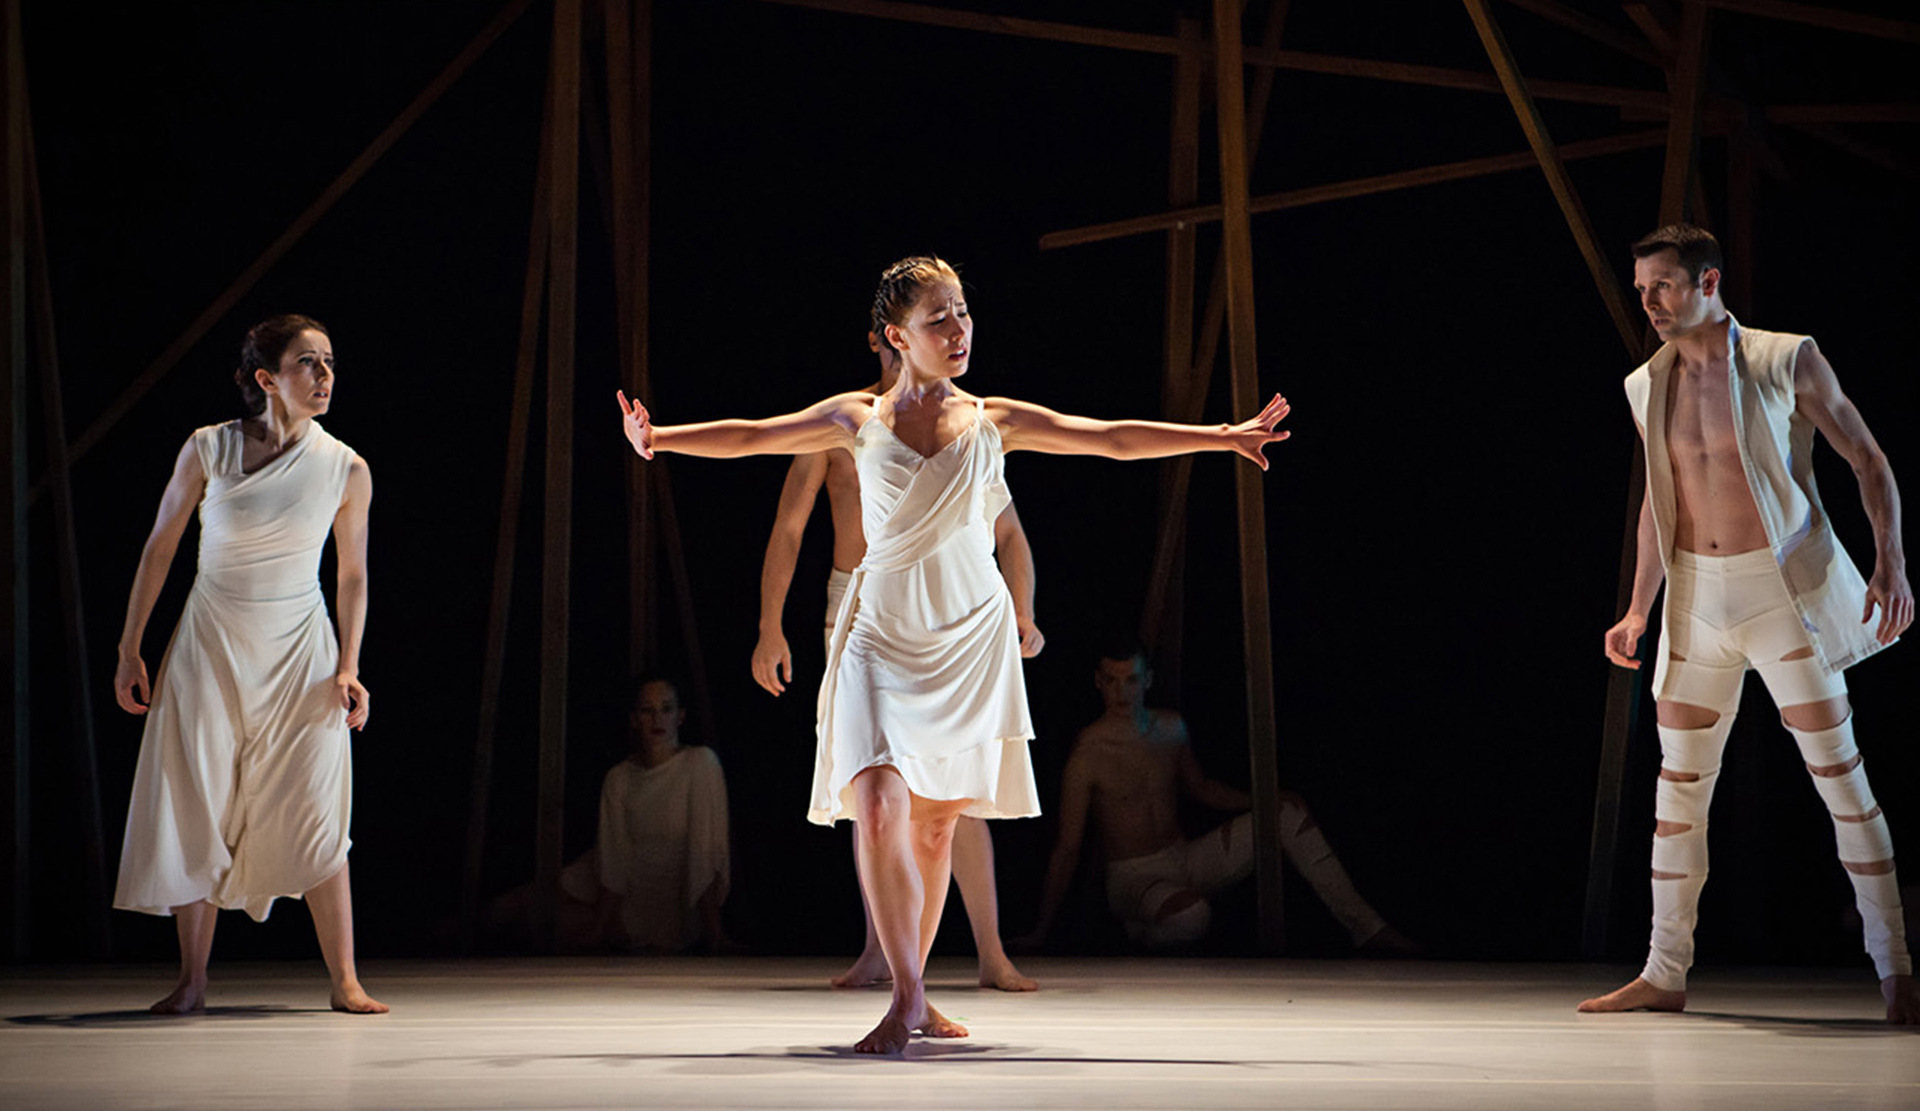 Rioult-Dance-NY-Williams-Center-for-the-Arts.jpg